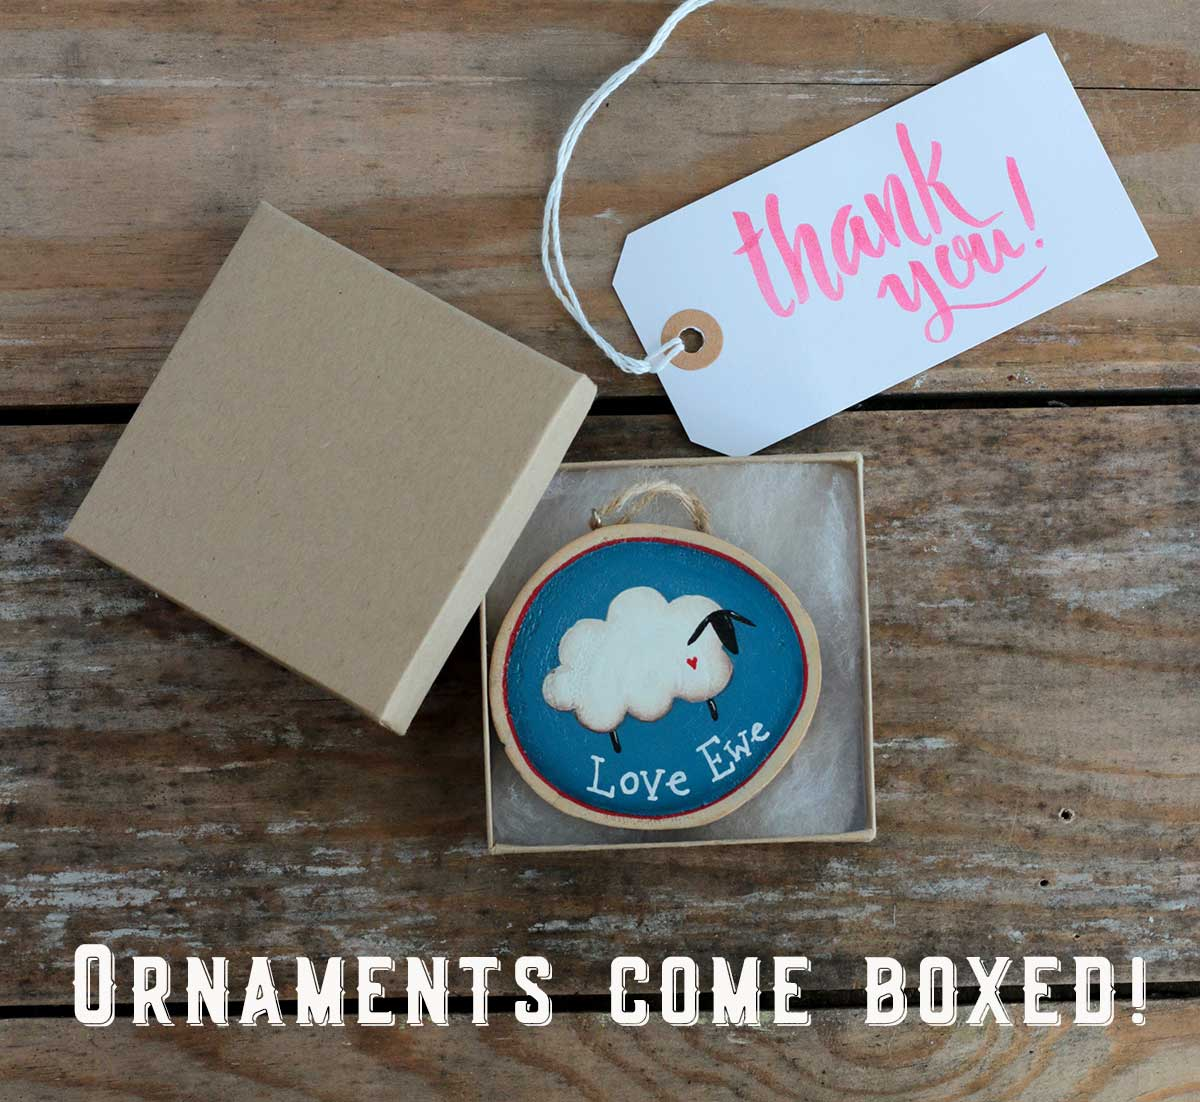 Ornaments come gift boxed!